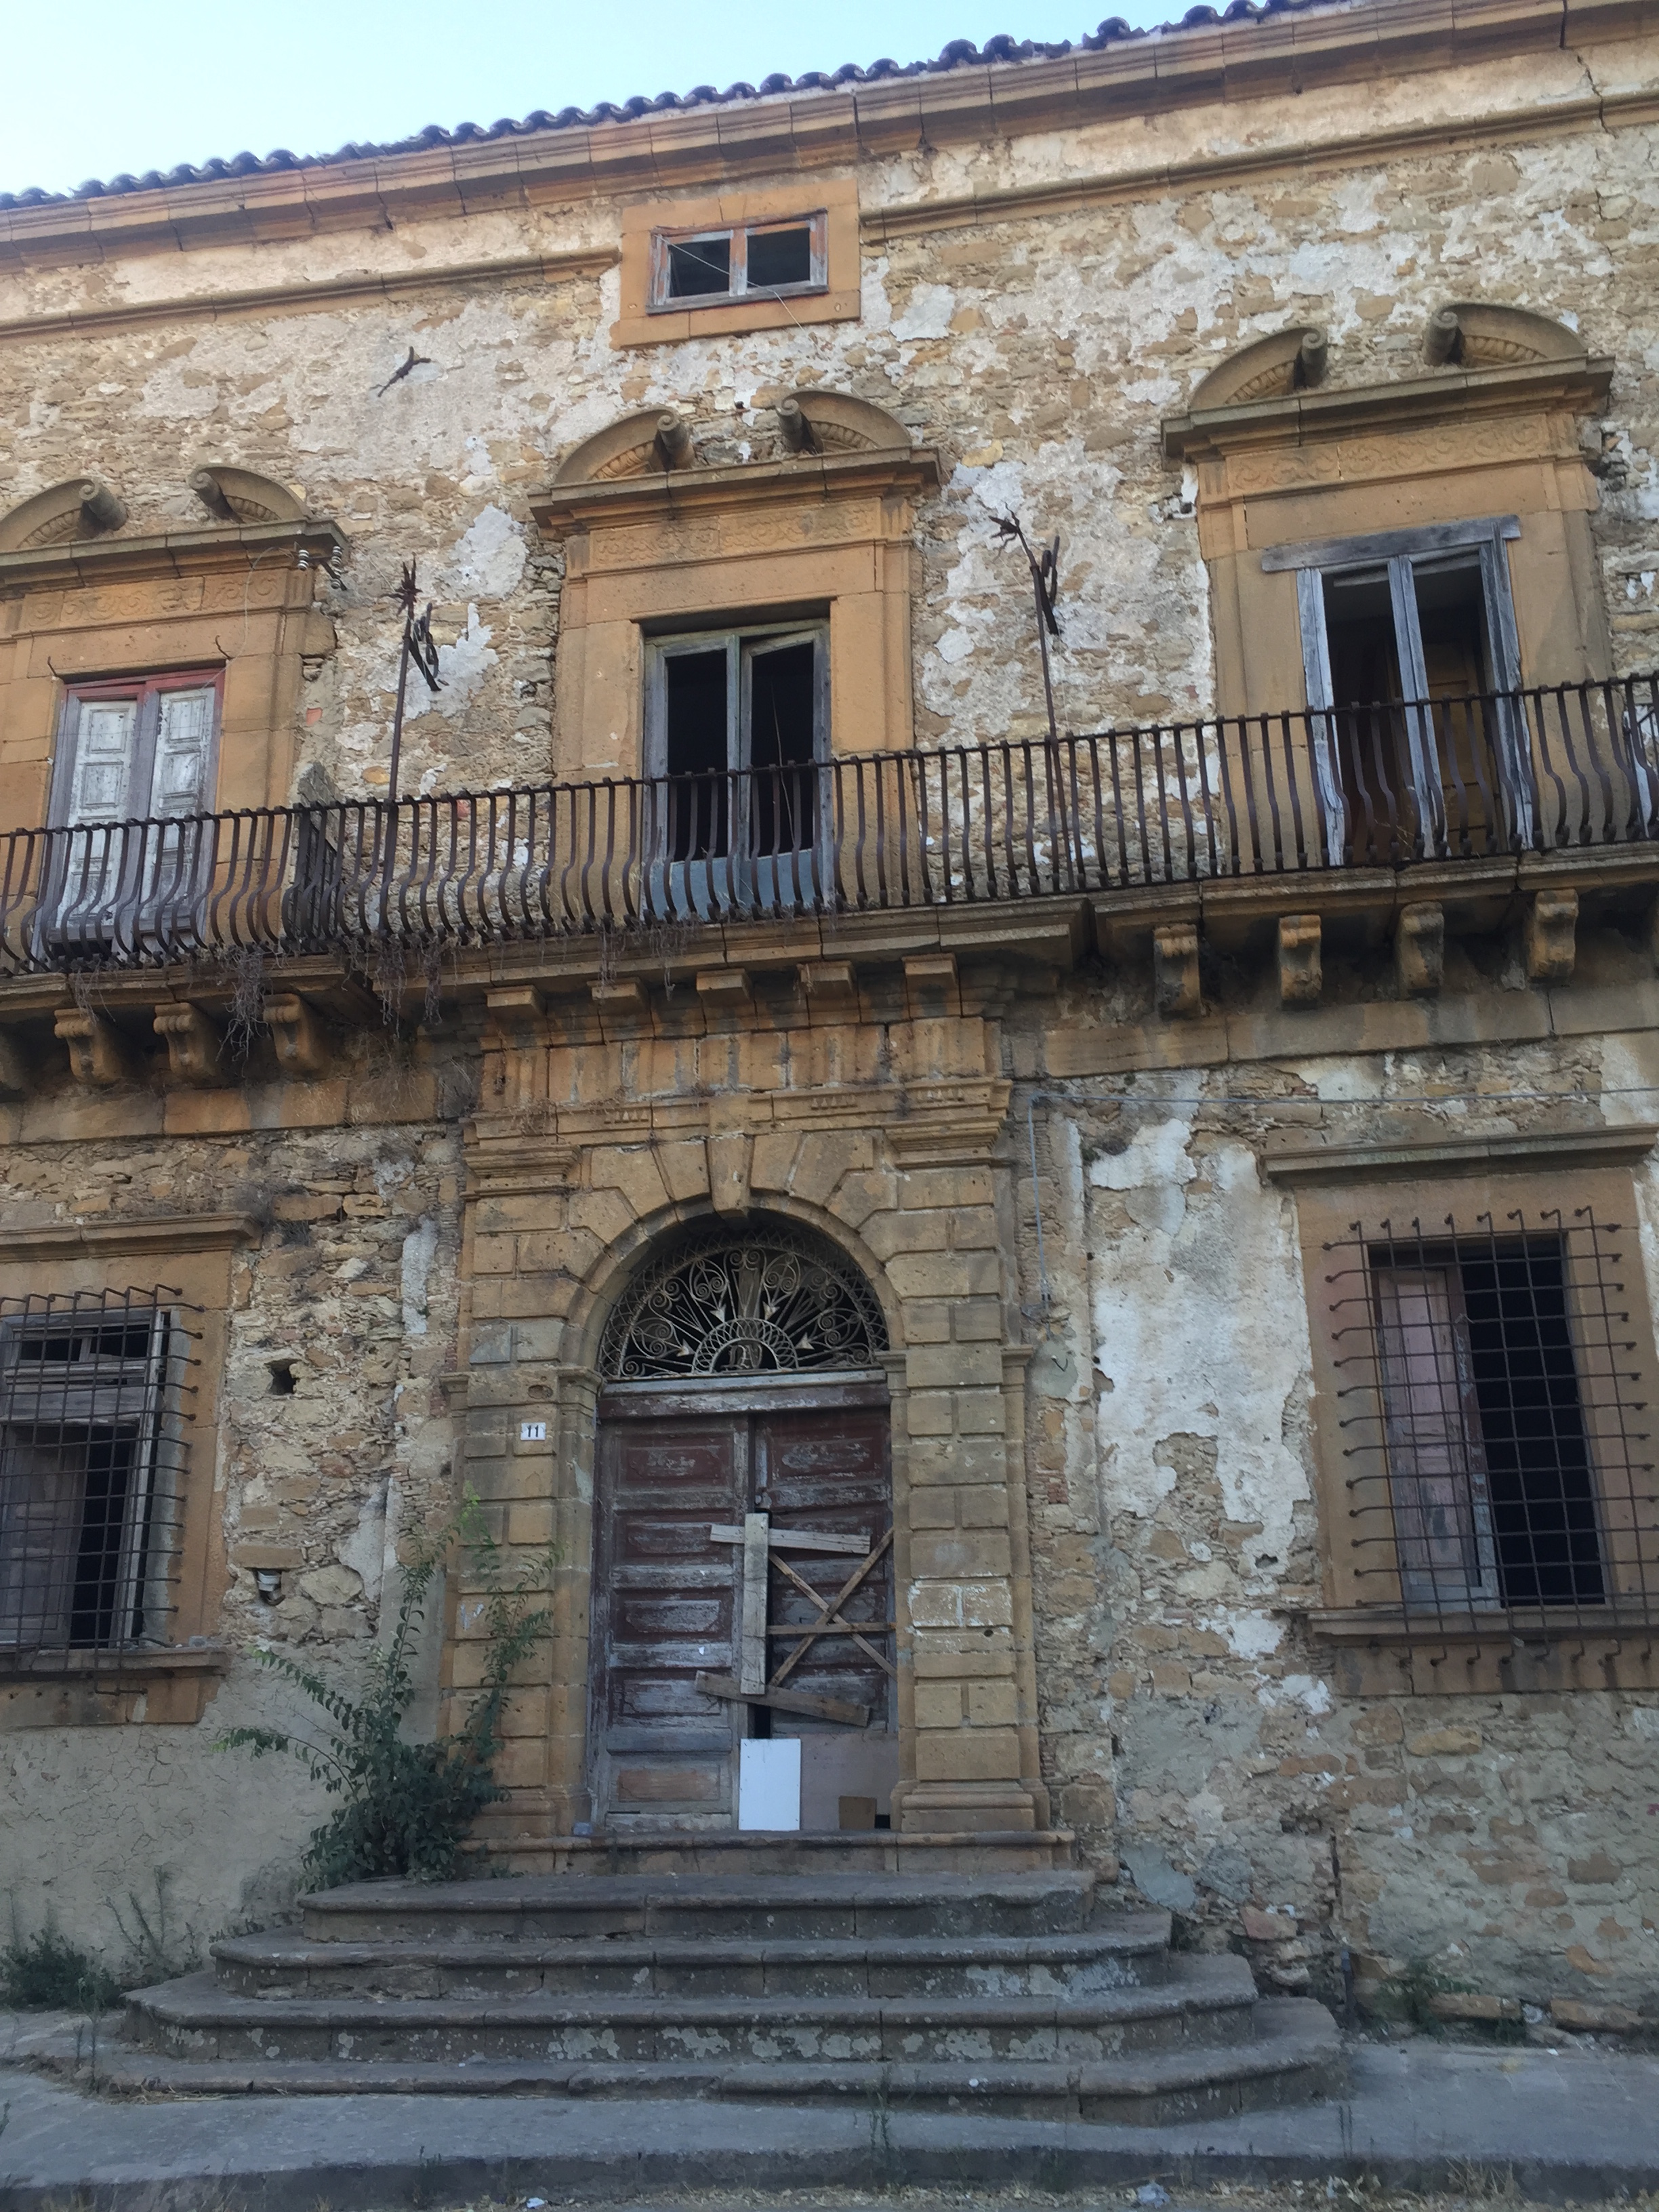 A ramshackled old home in Piazza Armerina